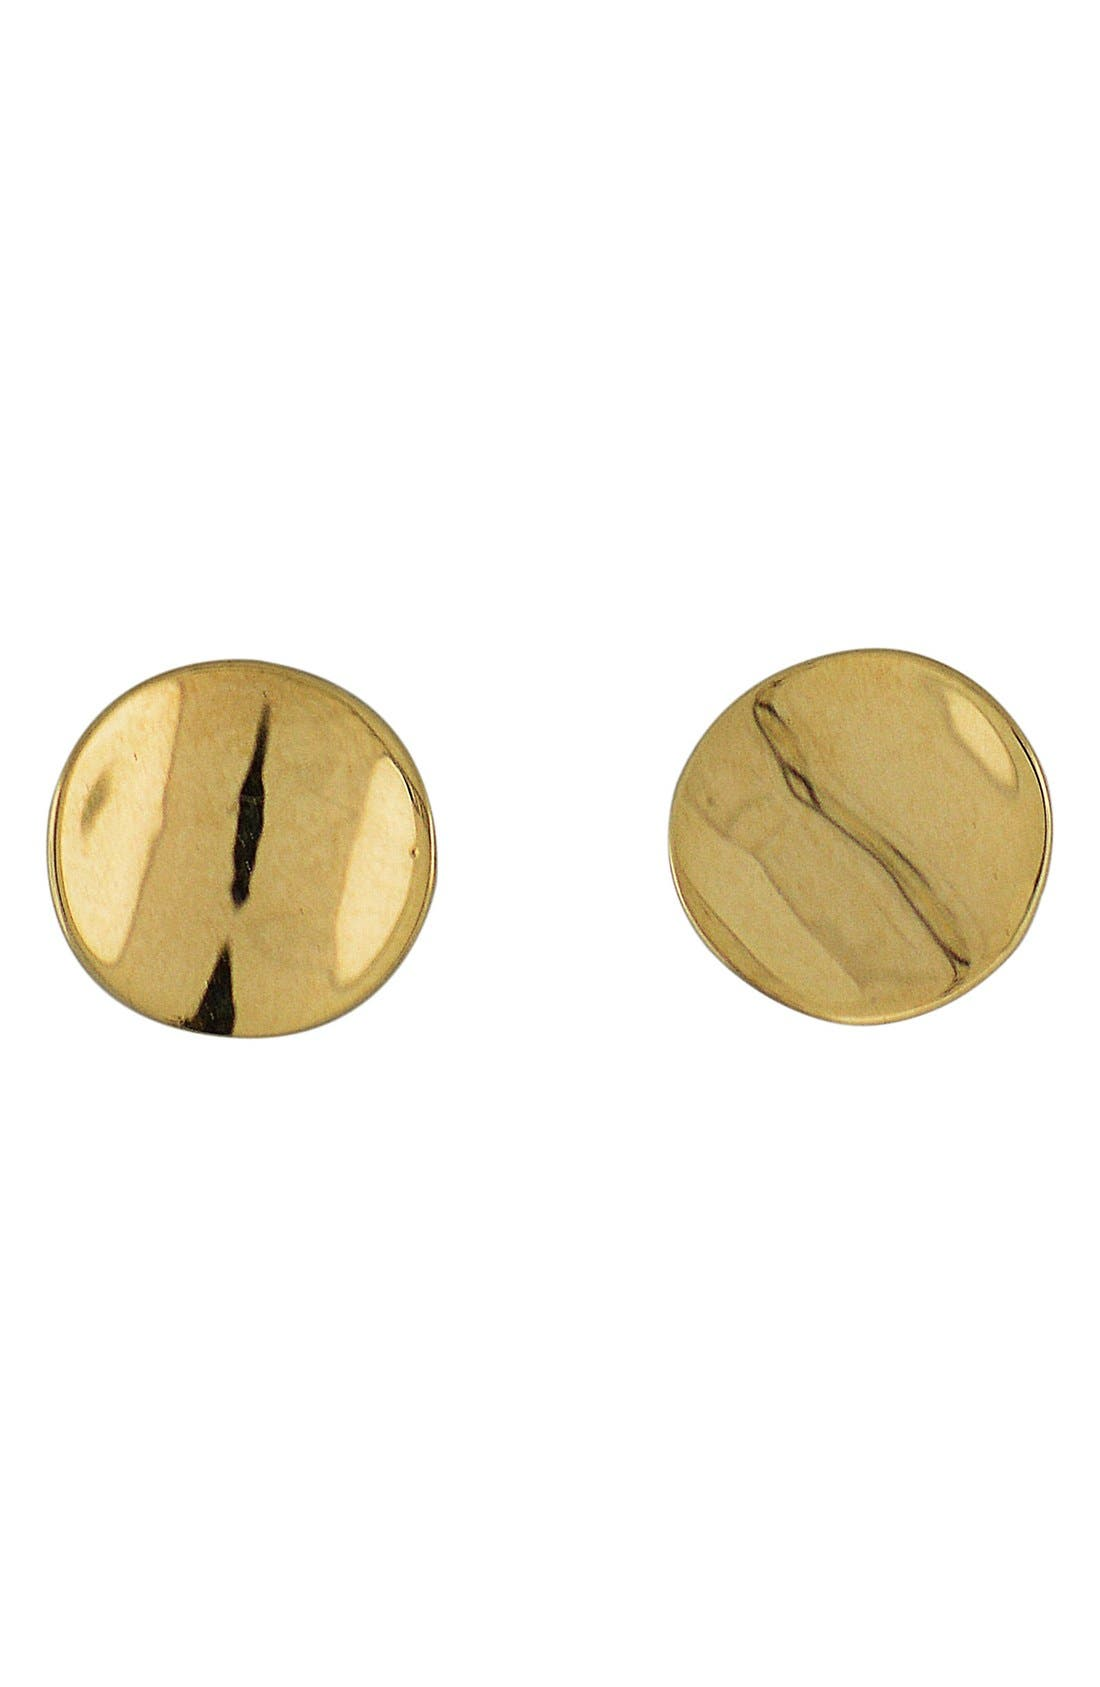 Alternate Image 1 Selected - Bony Levey Aurelia Stud Earrings (Nordstrom Exclusive)